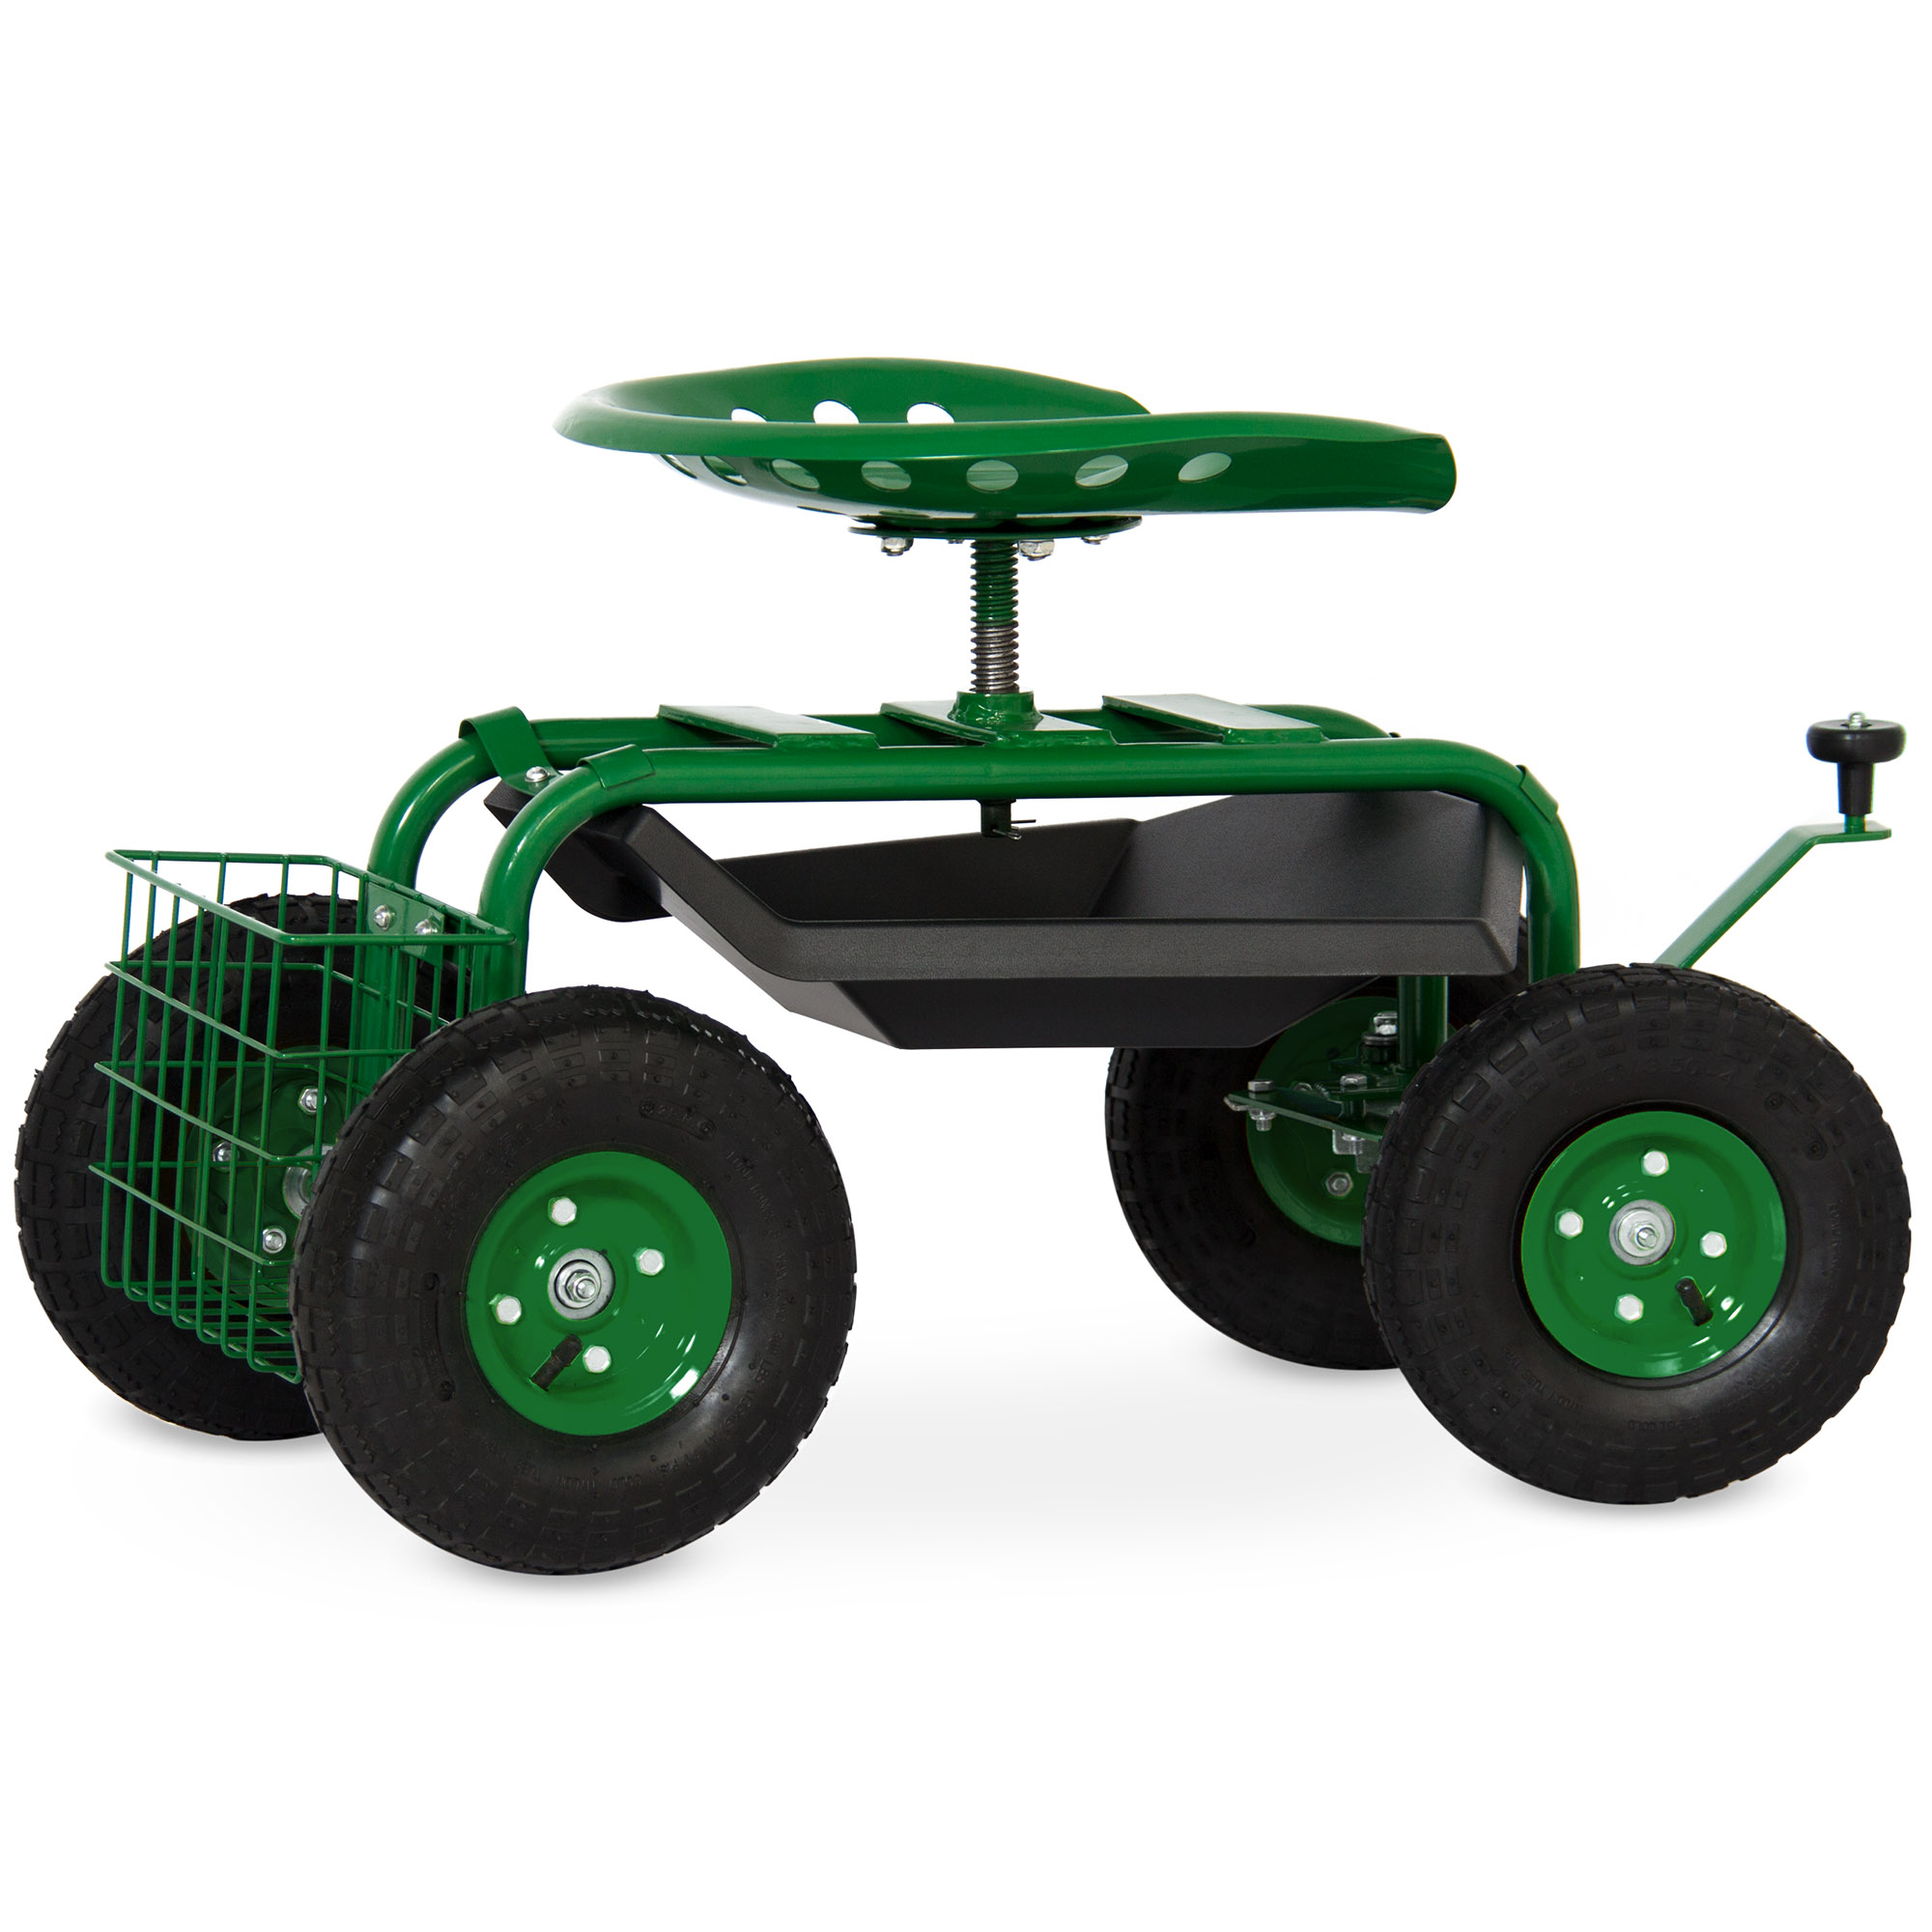 Best Choice Products Mobile Rolling Garden Work Seat W/ Tool Tray And  Basket   Green   Walmart.com